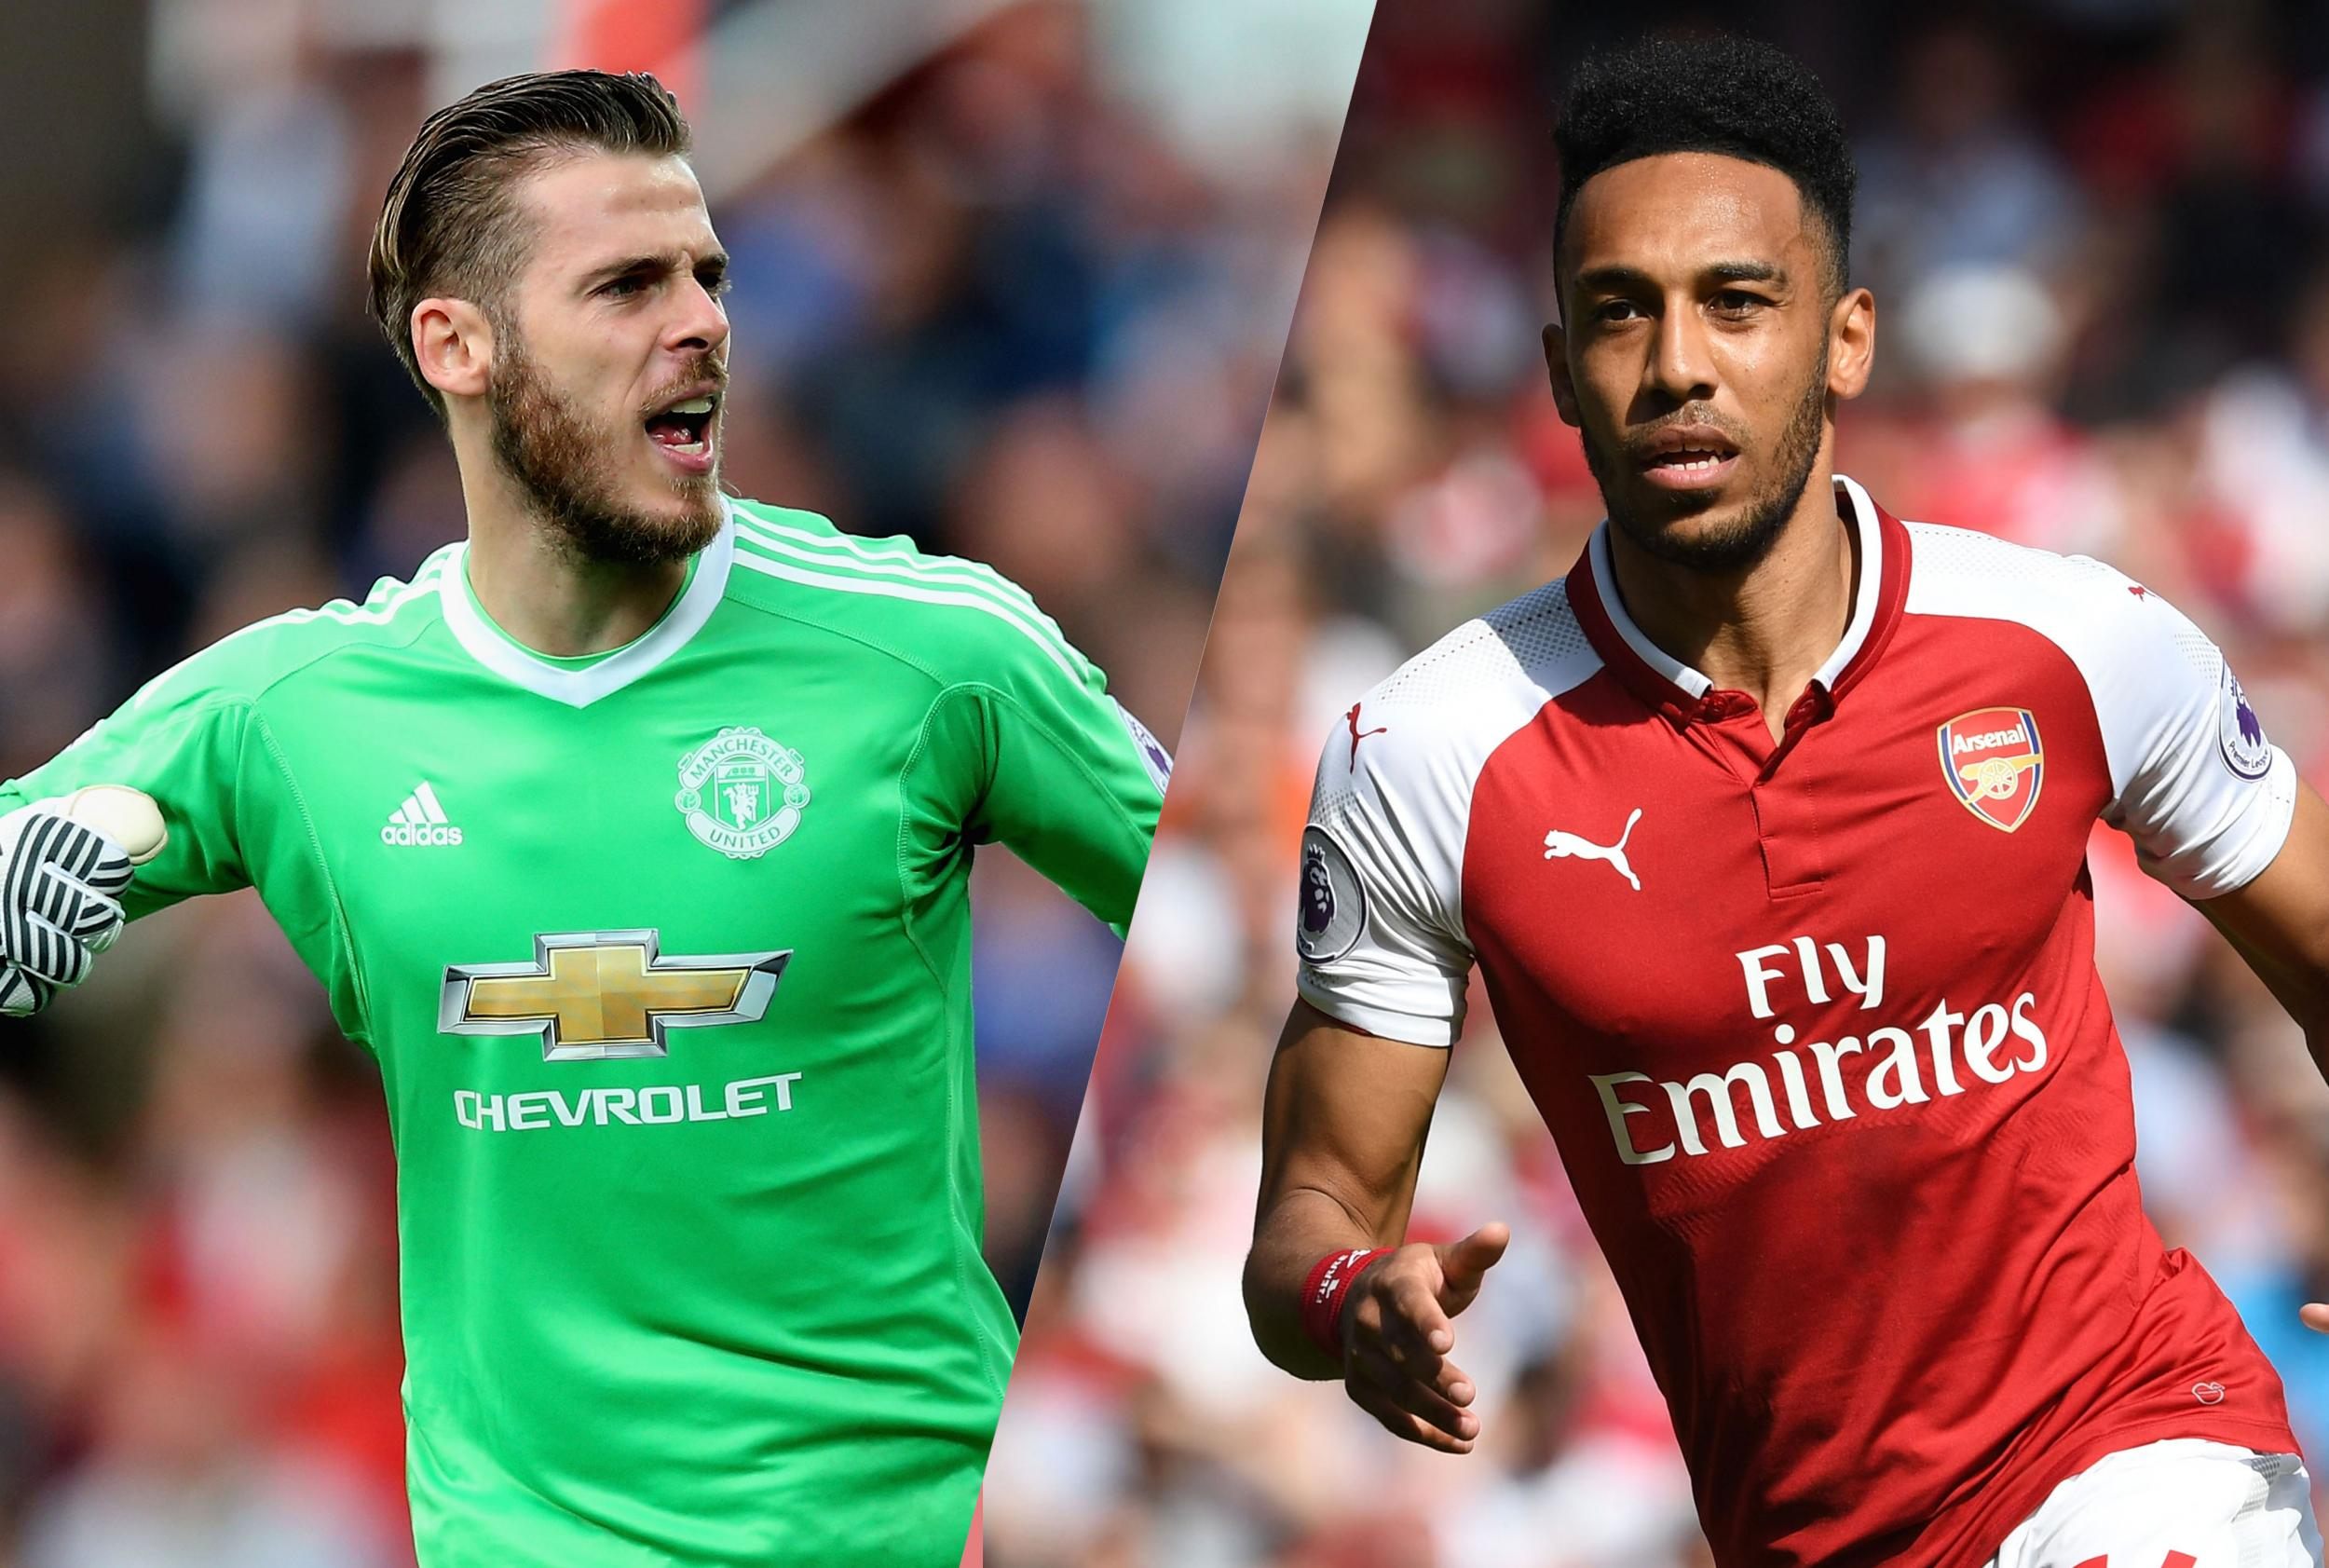 Manchester United vs Arsenal: Three key battles that could decide the clash at Old Trafford